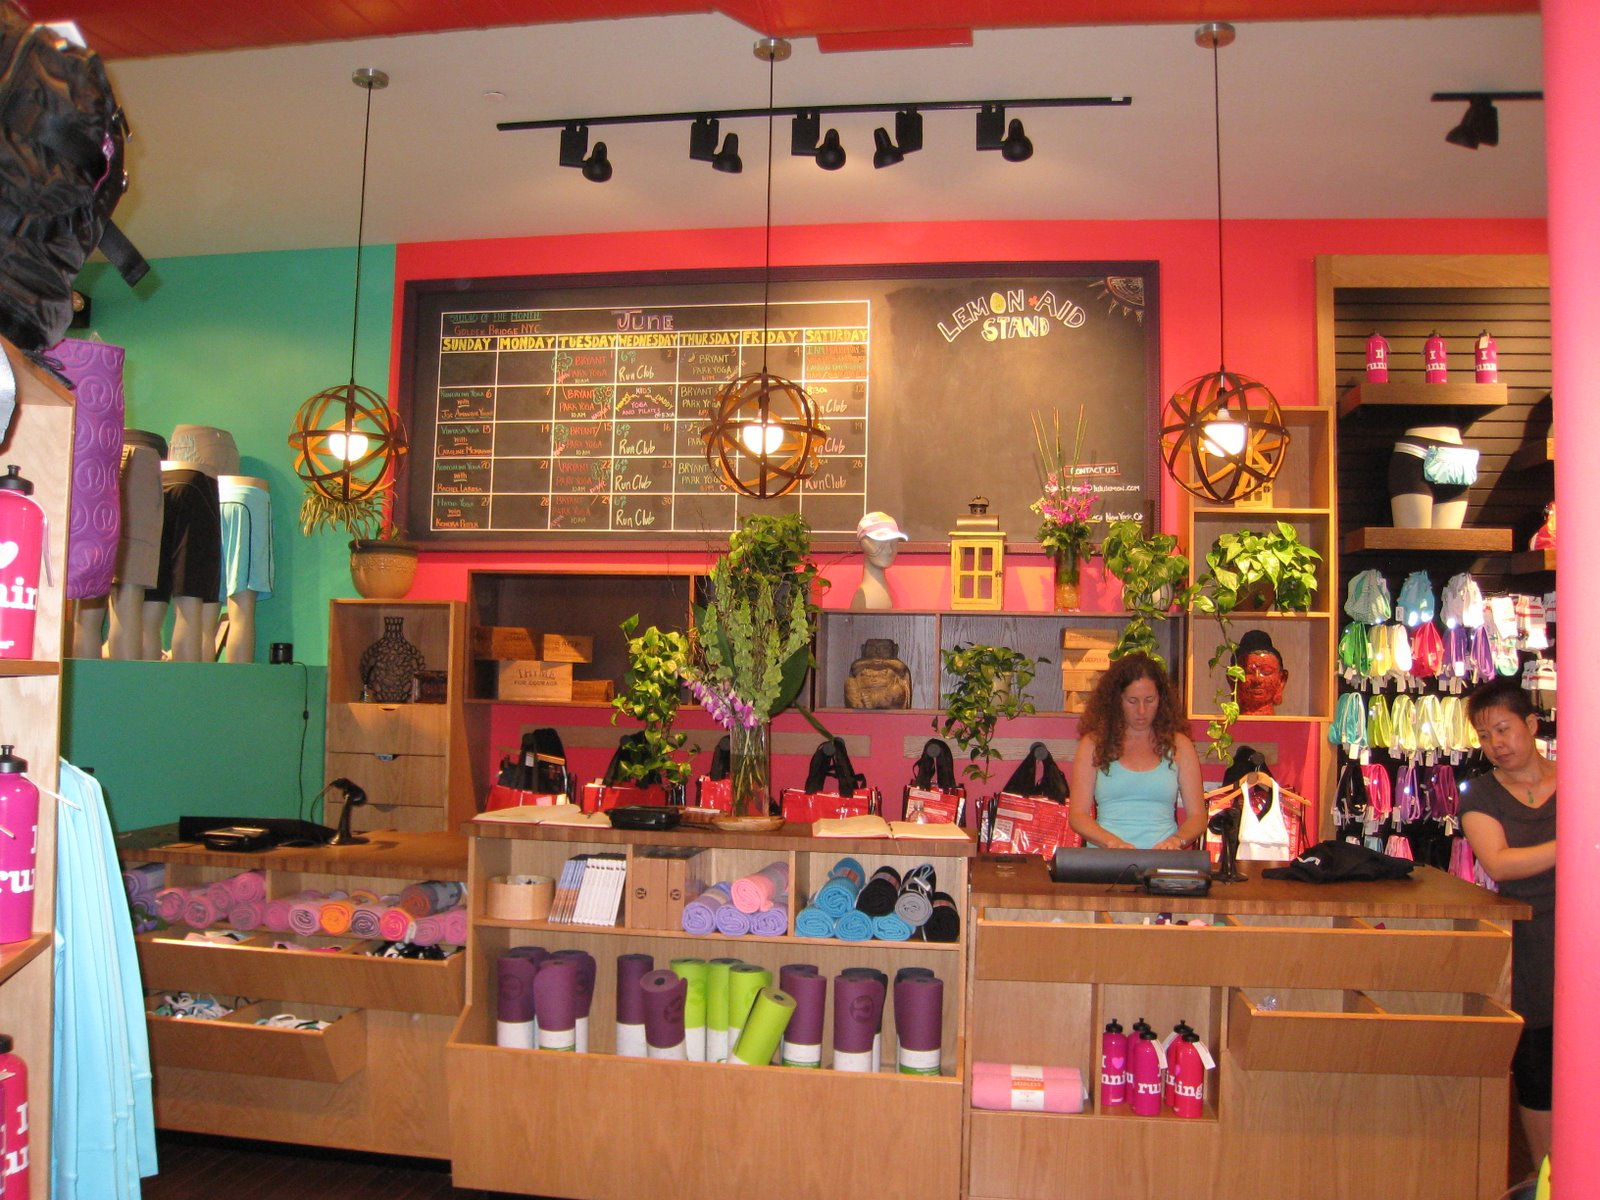 Flooring the consumer a retail experience that doesn t compete on